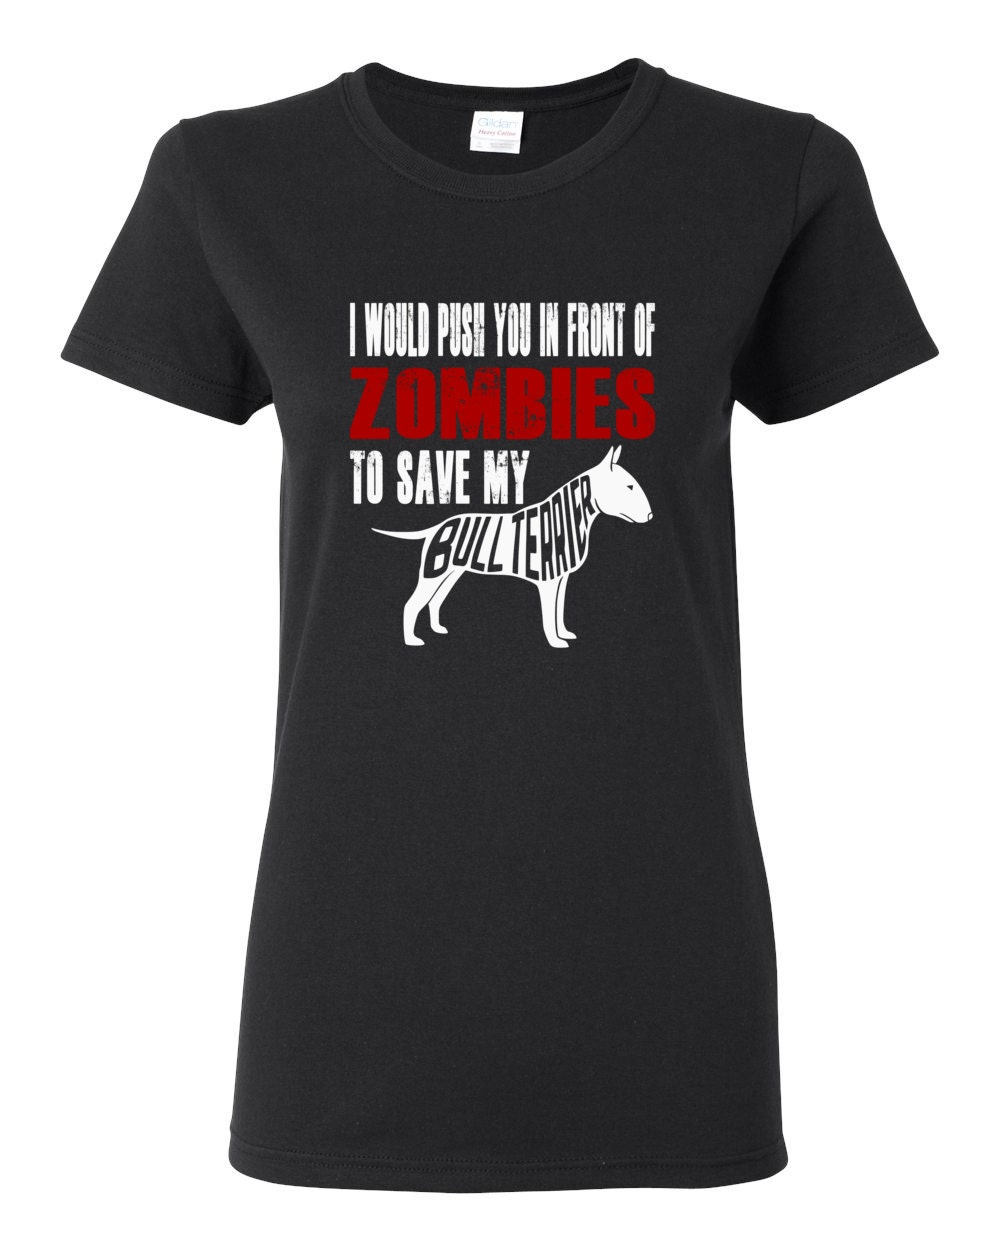 Bull Terrier Womens Shirt - I Would Push You In Front Of Zombies To Save My Bull Terrier Womens T-shirt